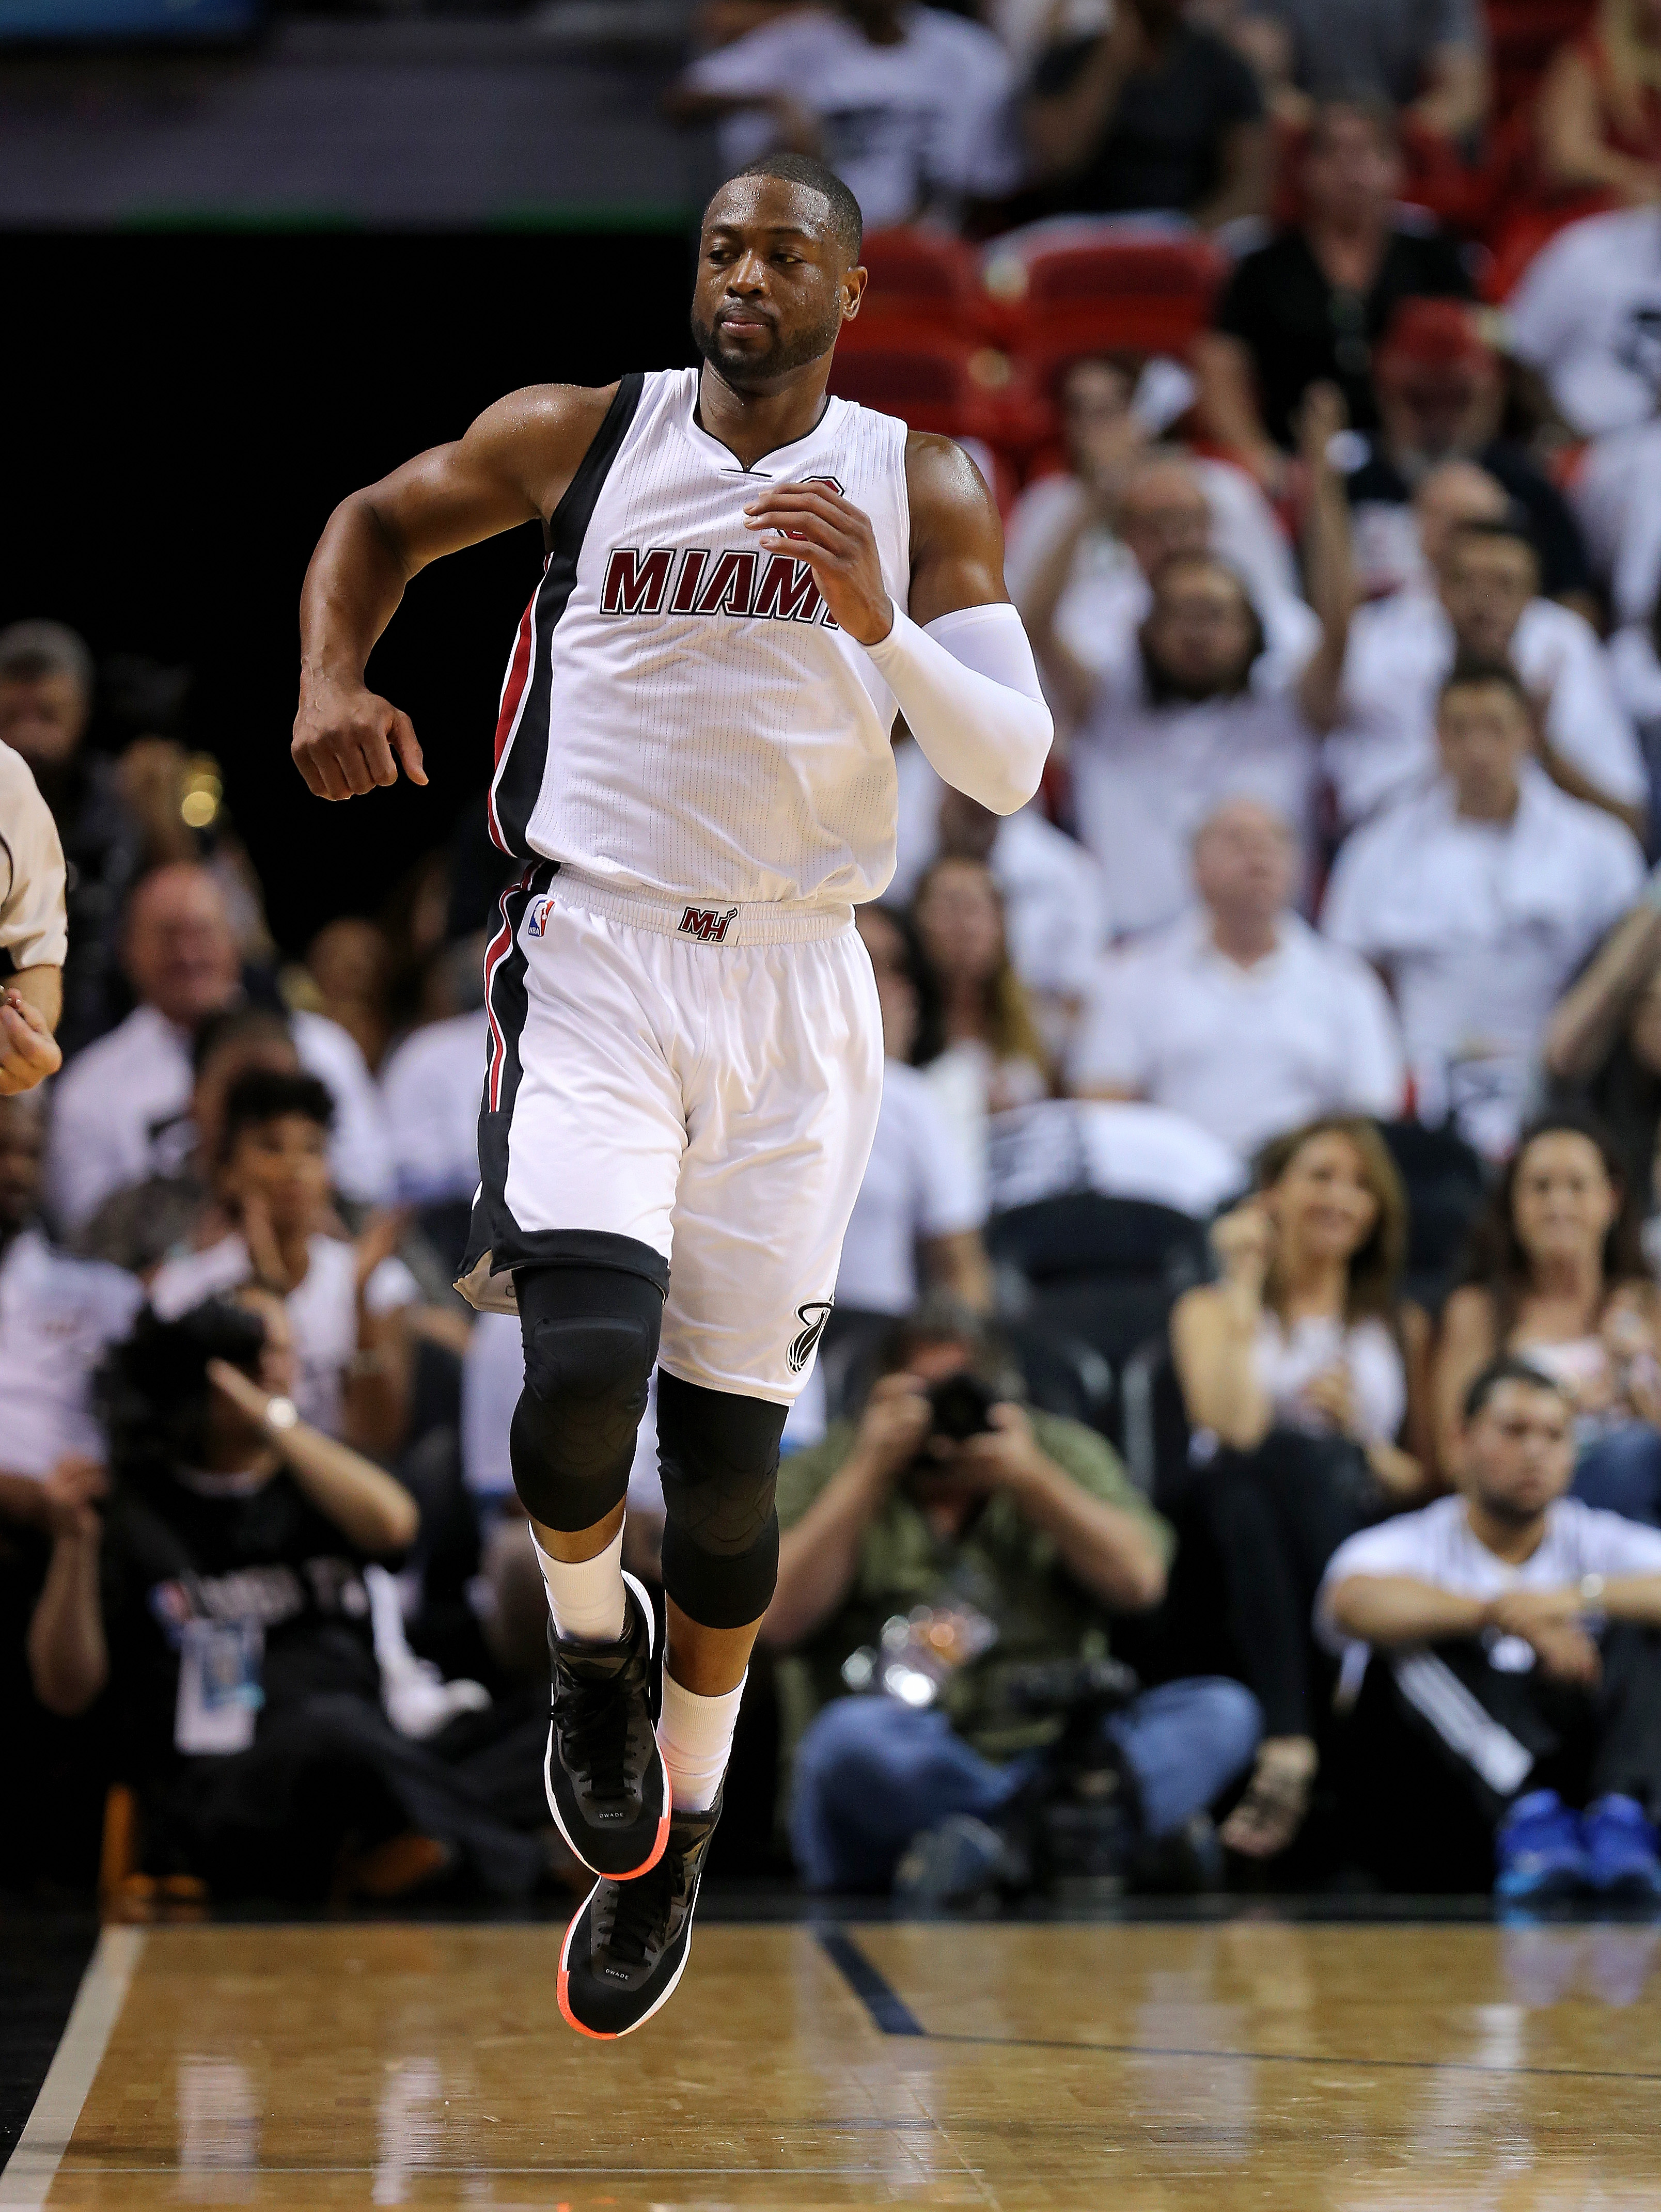 MIAMI, FL - APRIL 20: Dwyane Wade #3  of the Miami Heat reacts to a play during game two of the Eastern Conference Quarterfinals of the 2016 NBA Playoffs against the Charlotte Hornets at American Airlines Arena on April 20, 2016 in Miami, Florida. (Photo